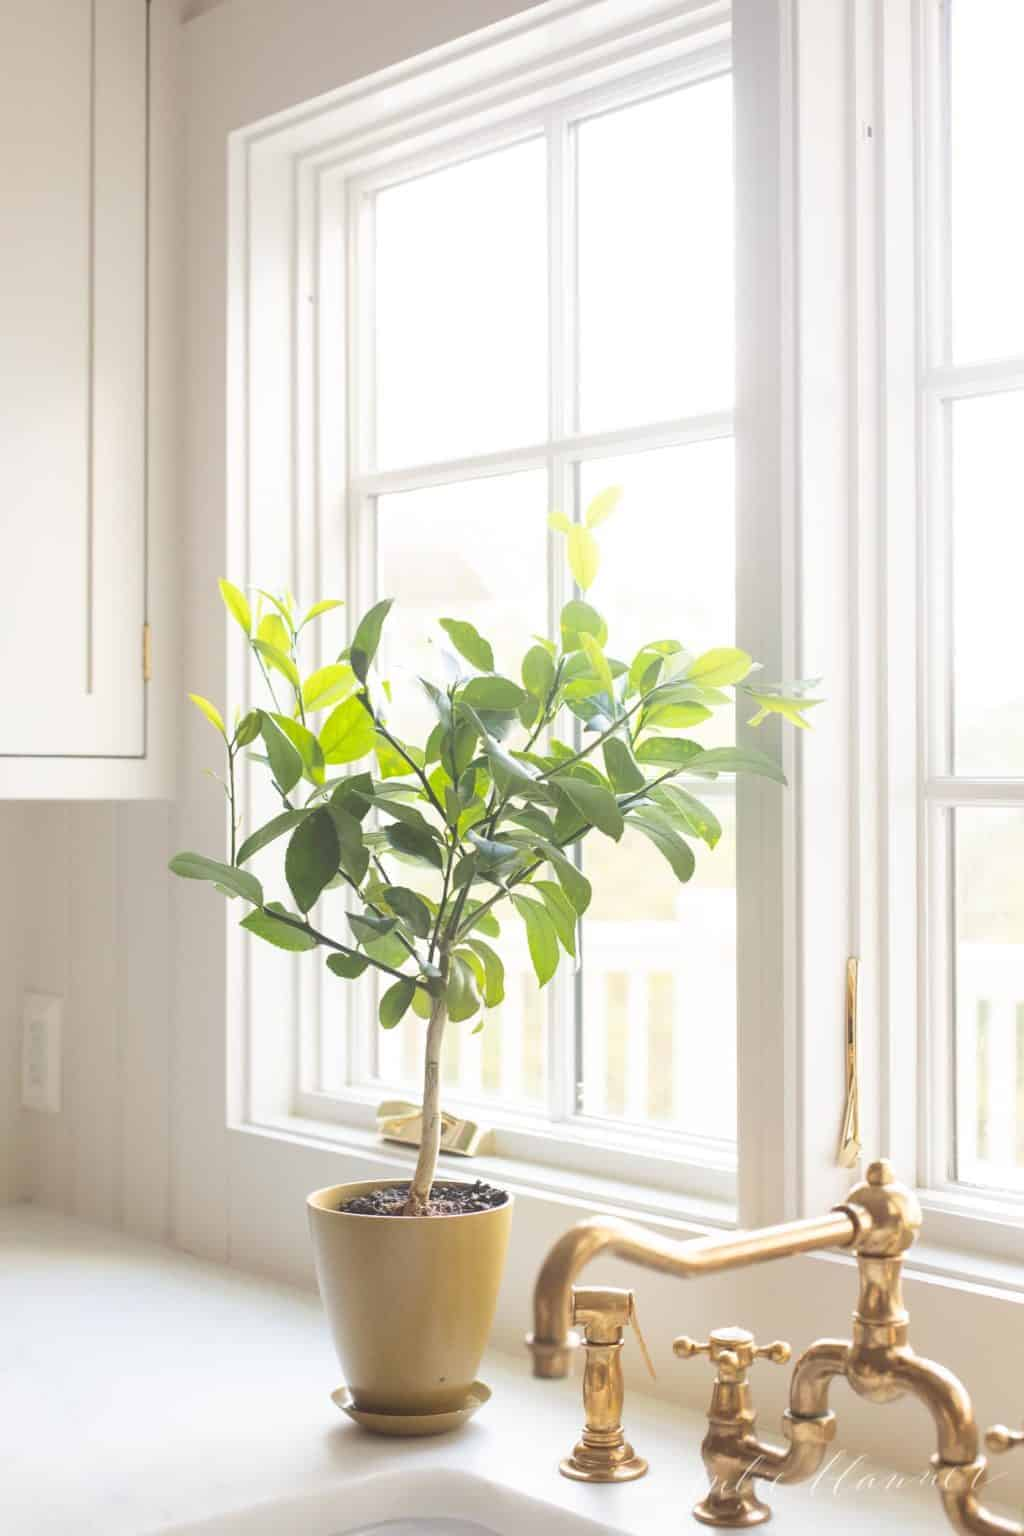 A white kitchen with a brass faucet, lemon tree in a pot in the window.